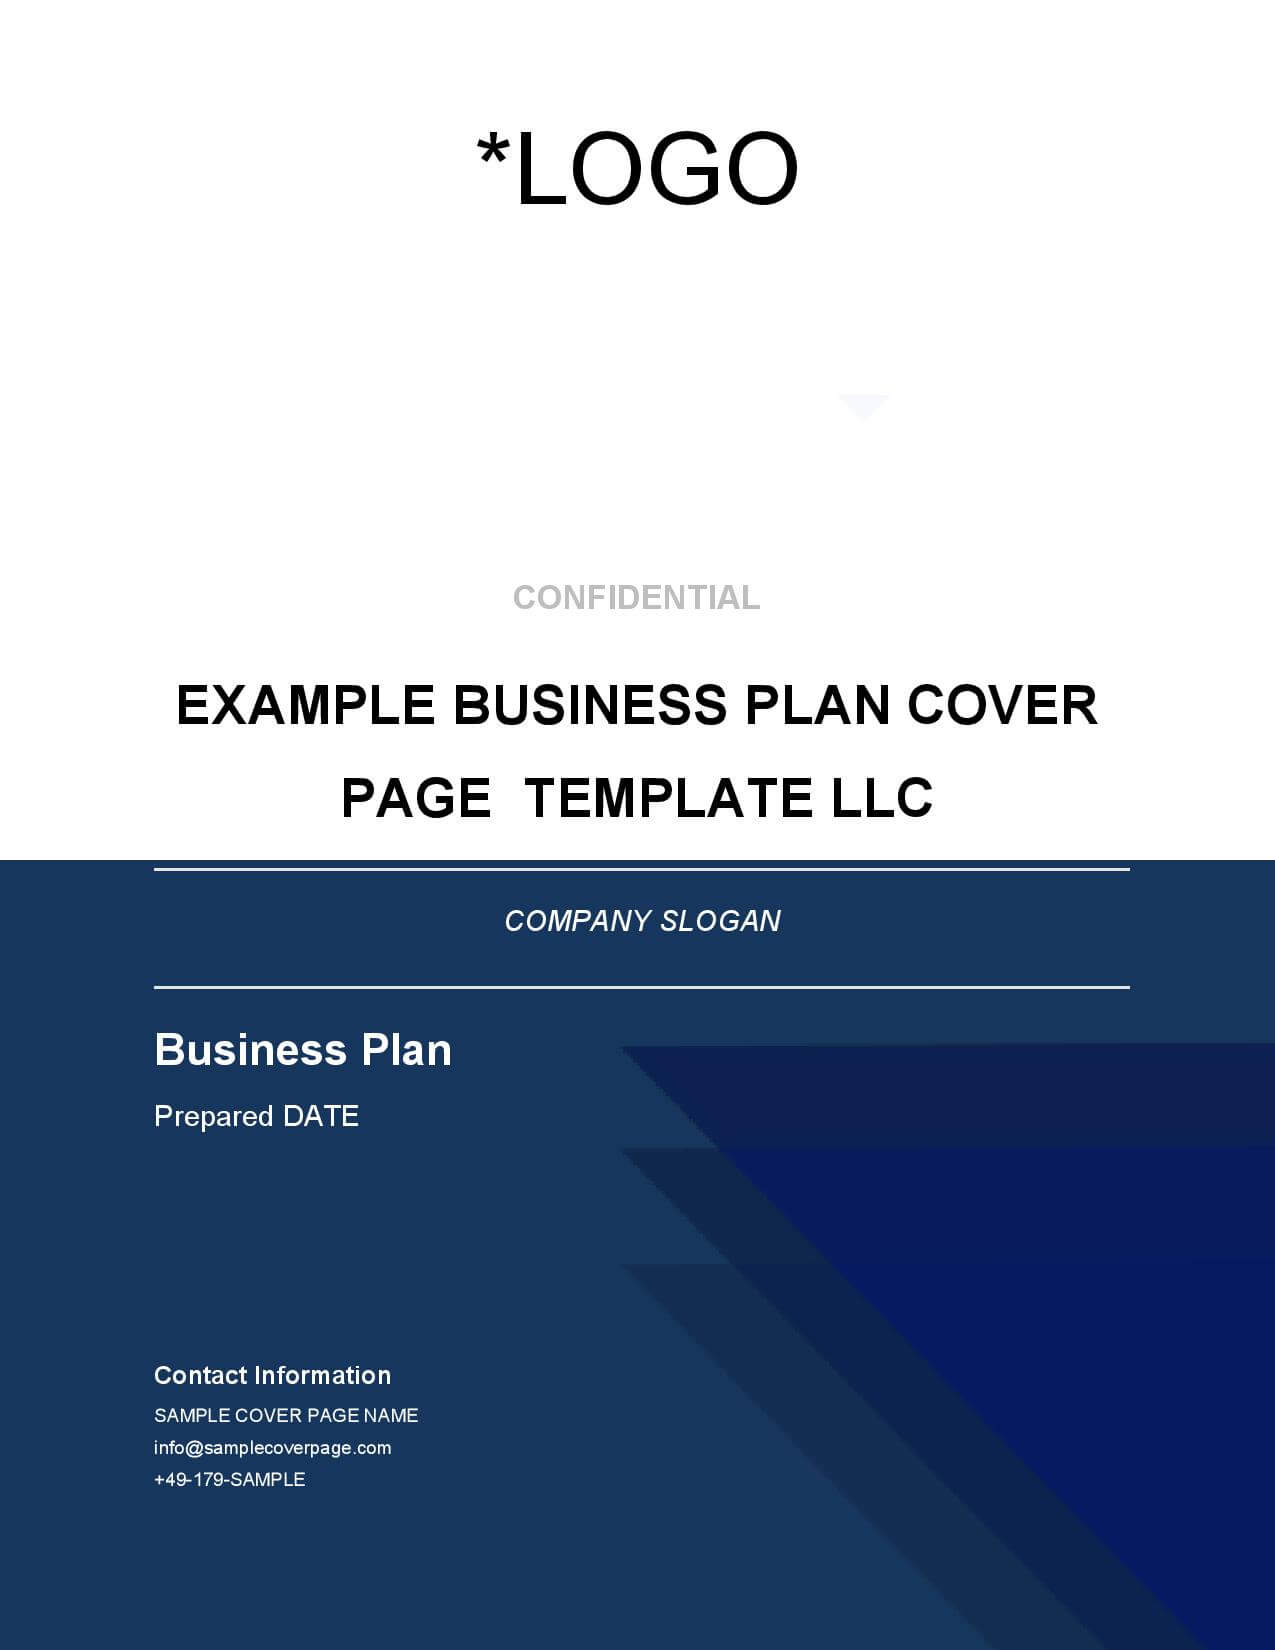 businessplan-cover-page-template-en-1-page-001